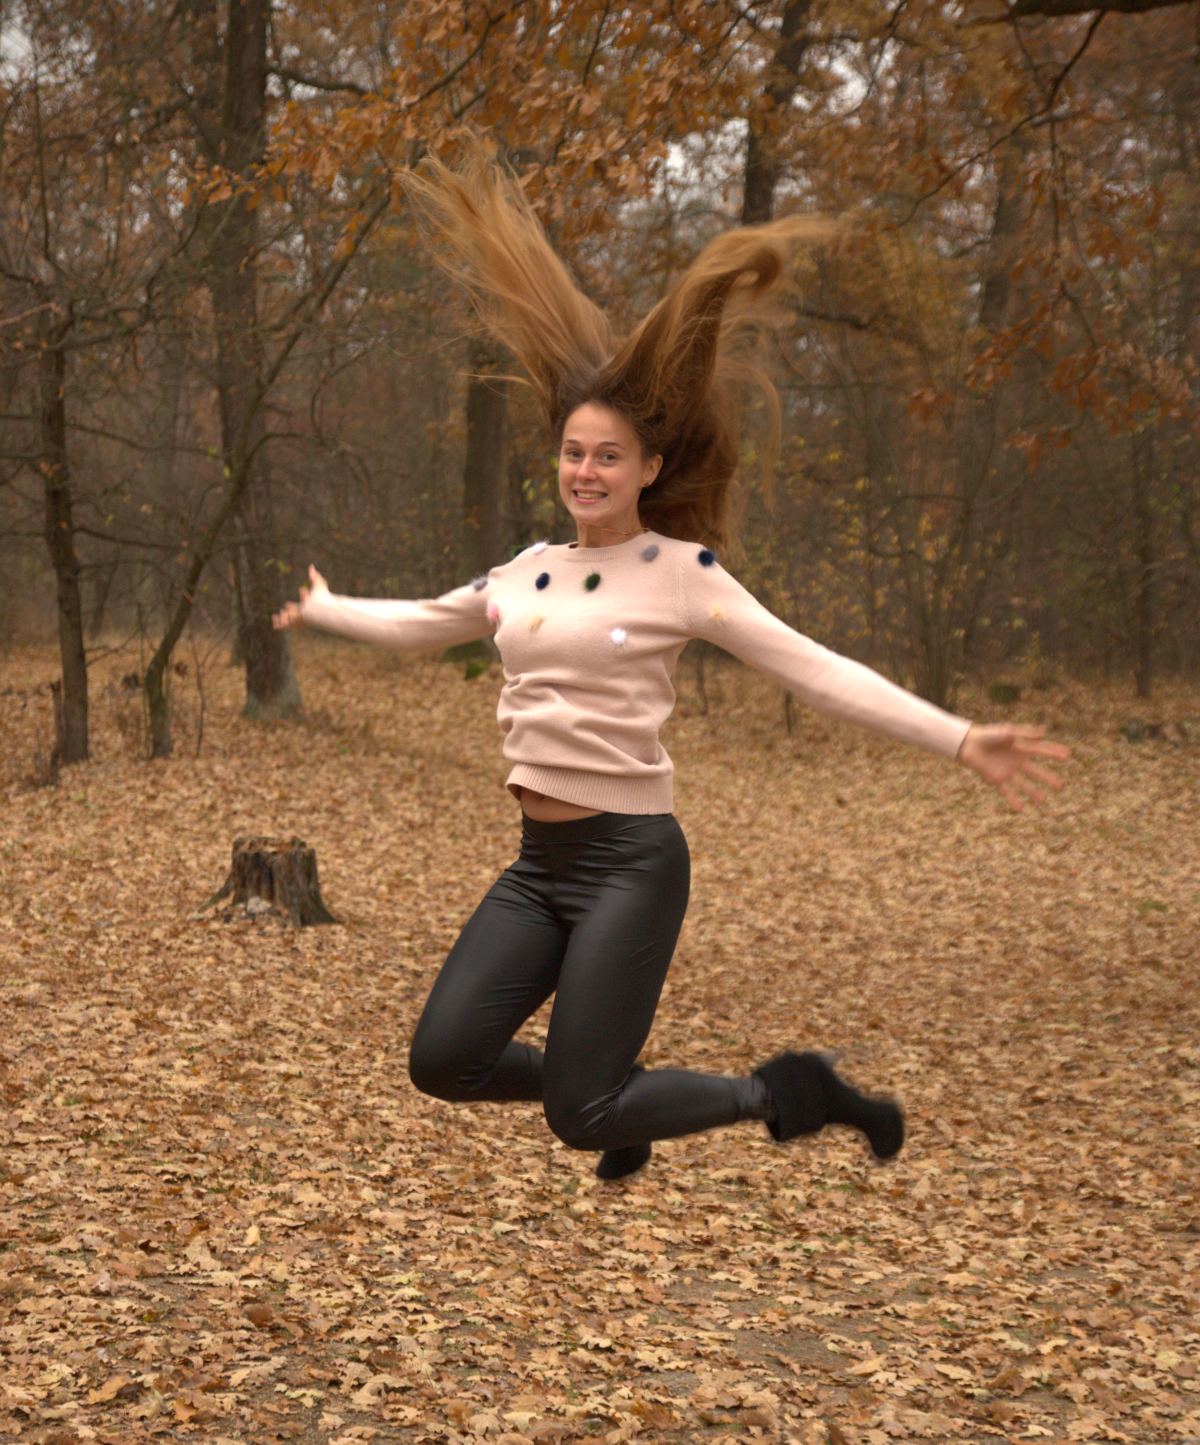 julia-jumping-autumn